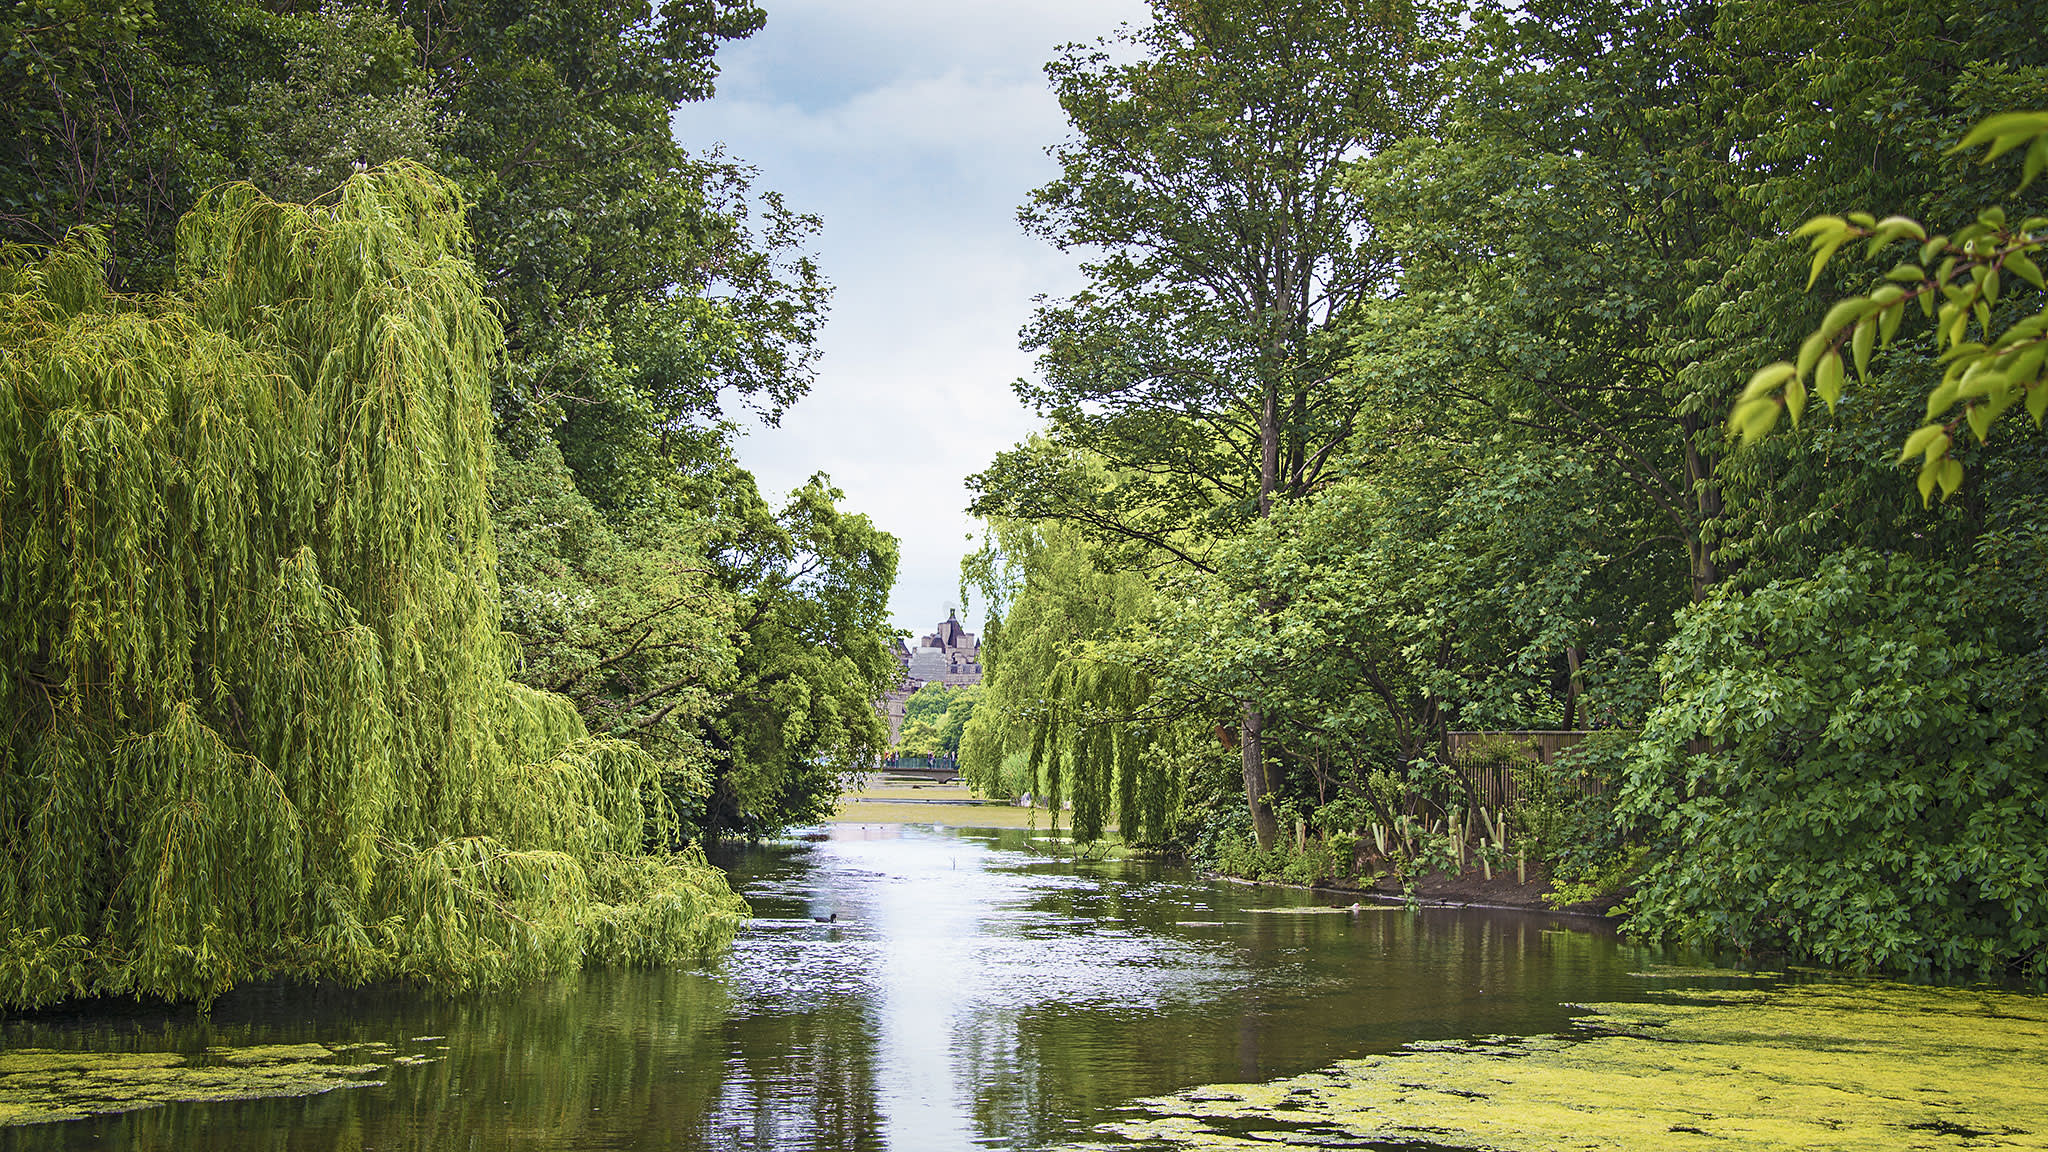 How to save parks and other urban green spaces | Financial Times